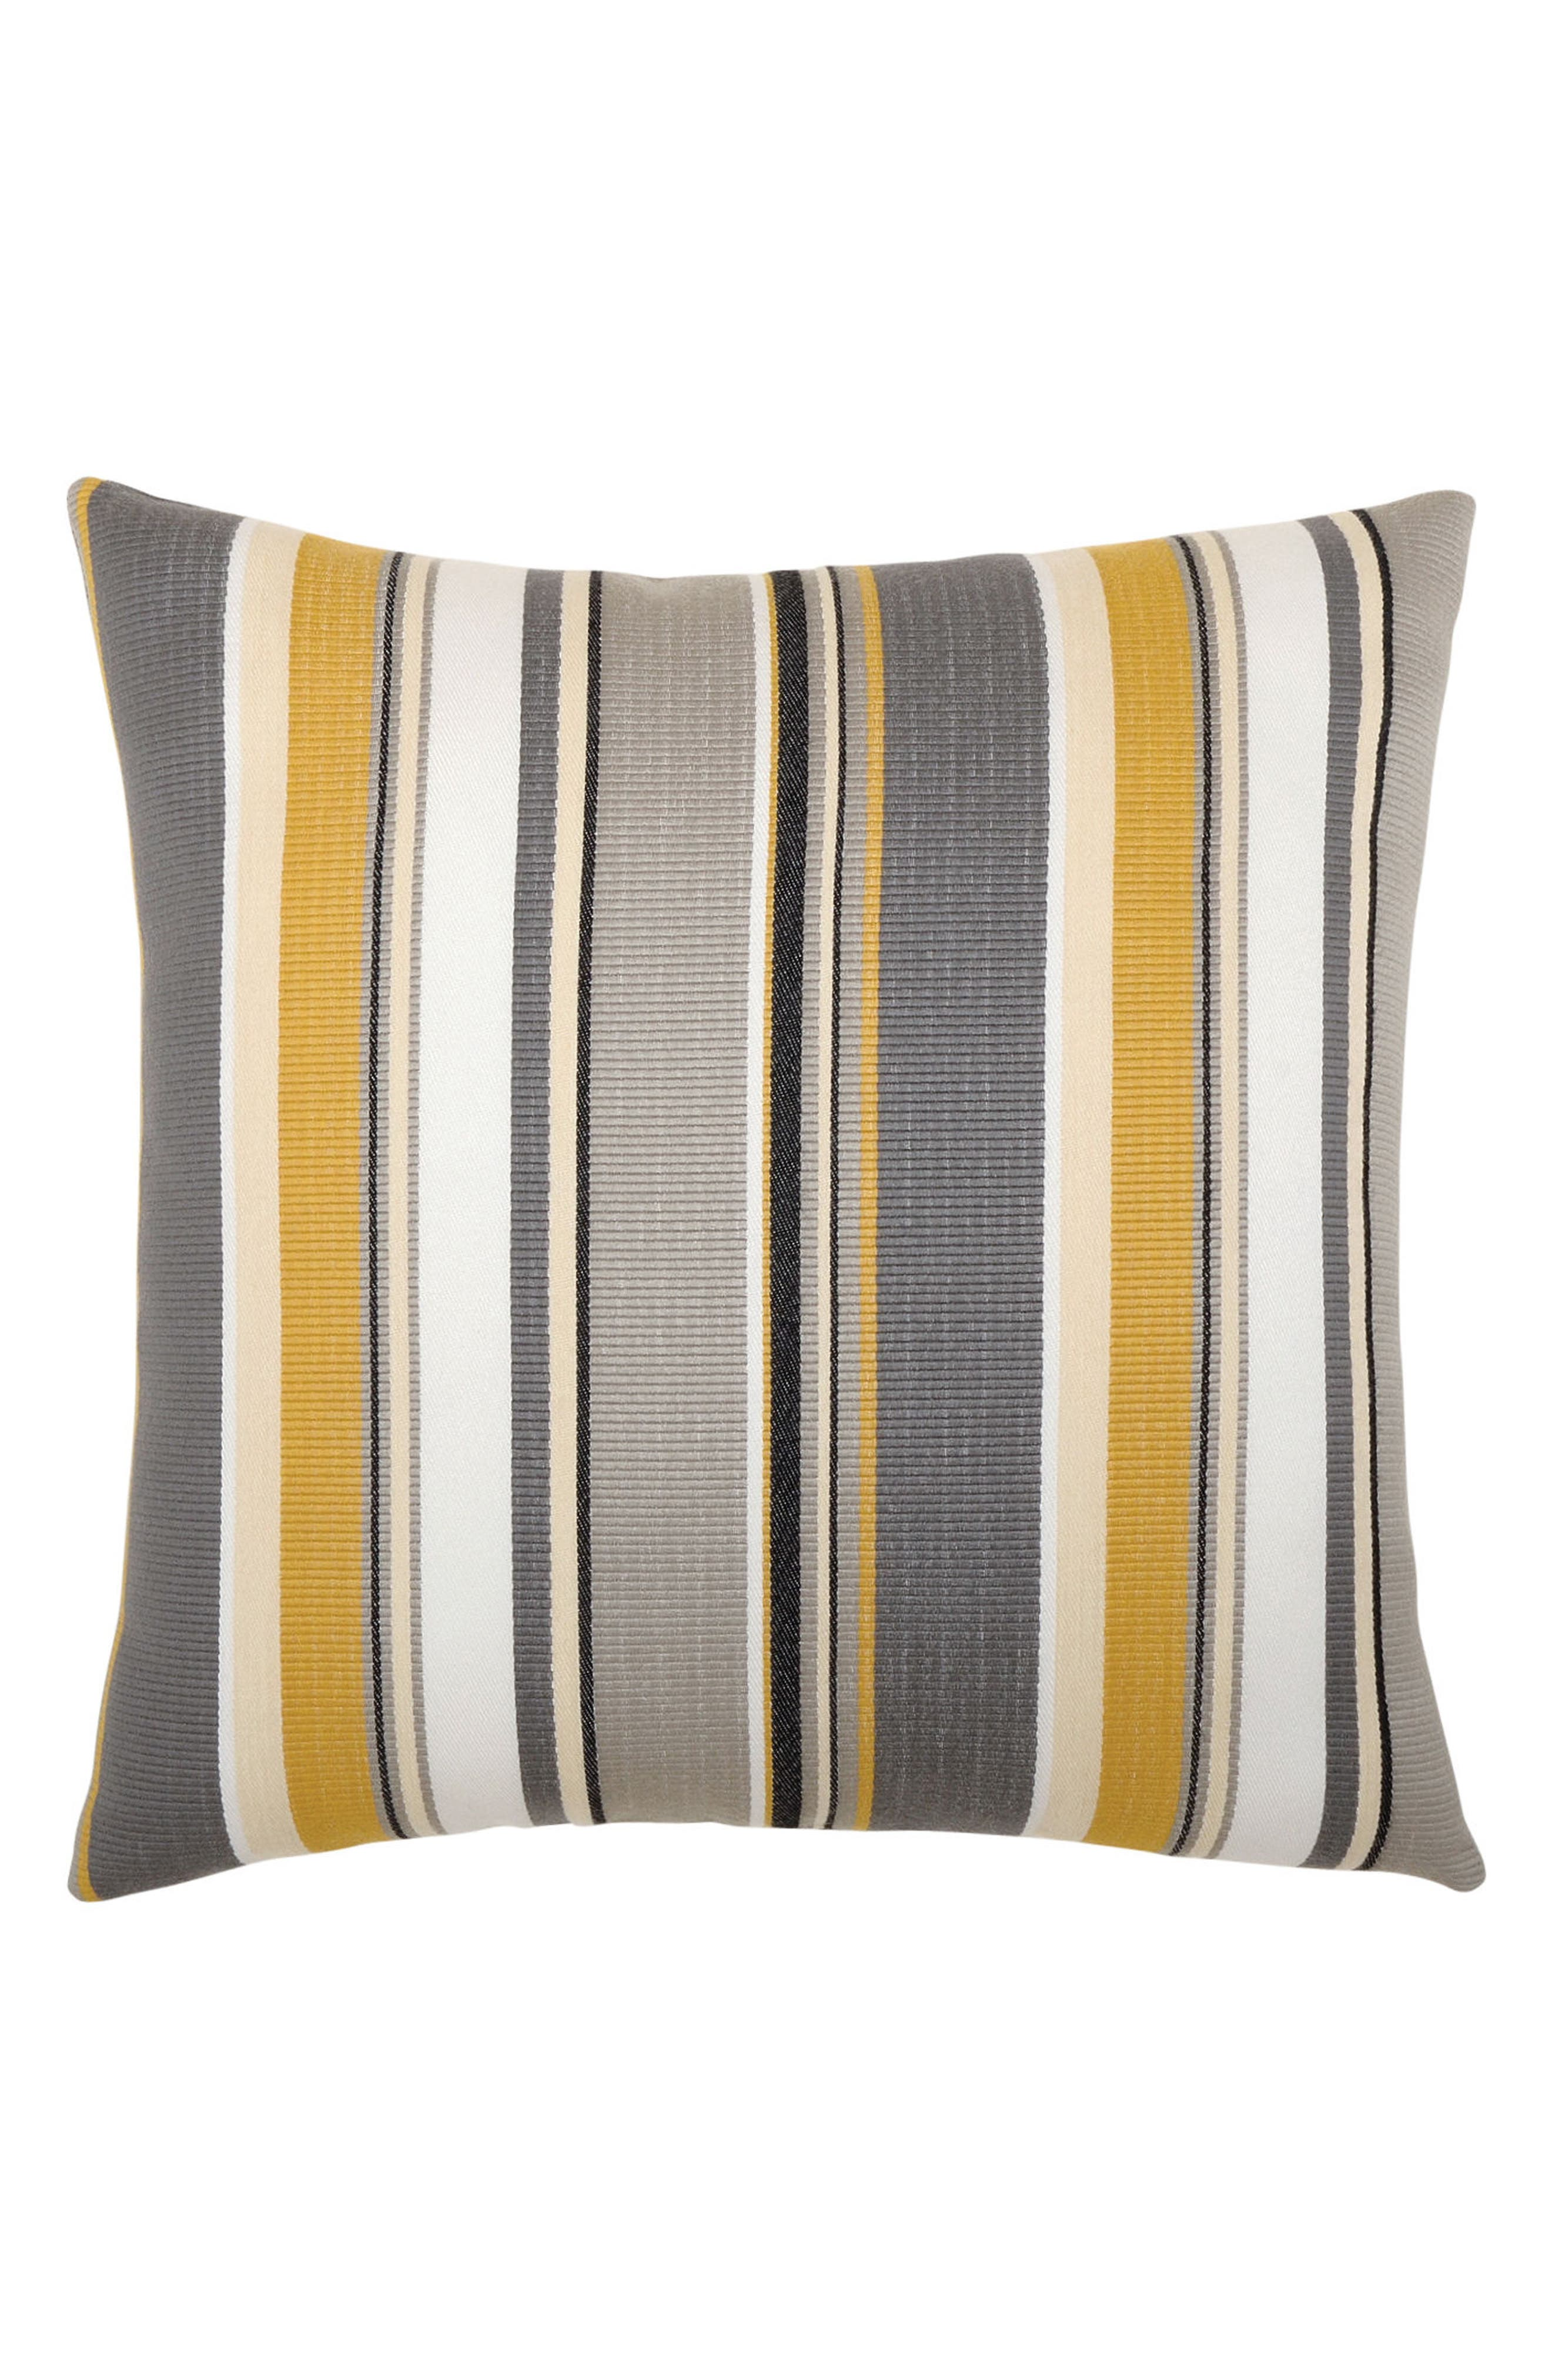 Shadow Stripe Indoor/Outdoor Accent Pillow,                             Main thumbnail 1, color,                             020